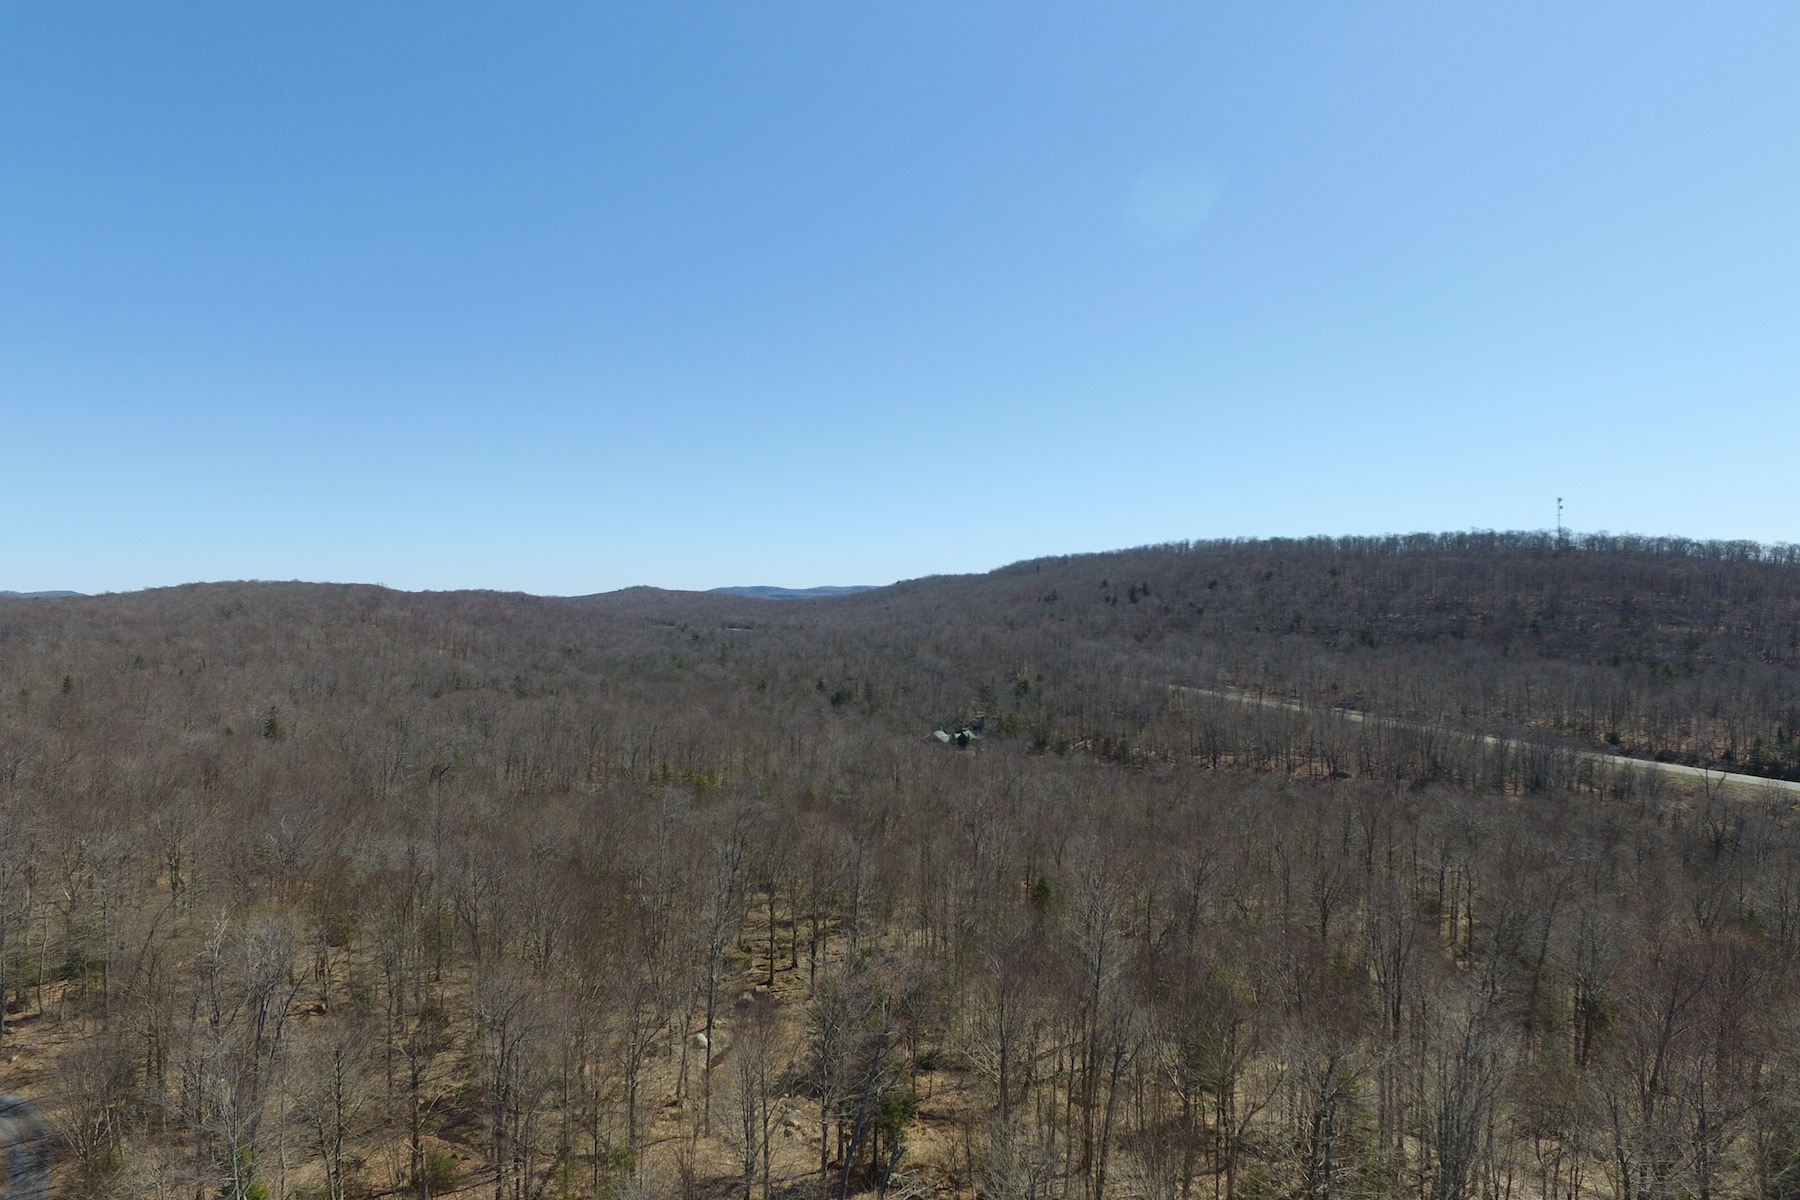 商用 为 销售 在 Adirondack Land For Sale 1515-A Nys Route 28 Thendara, 纽约州 13472 美国